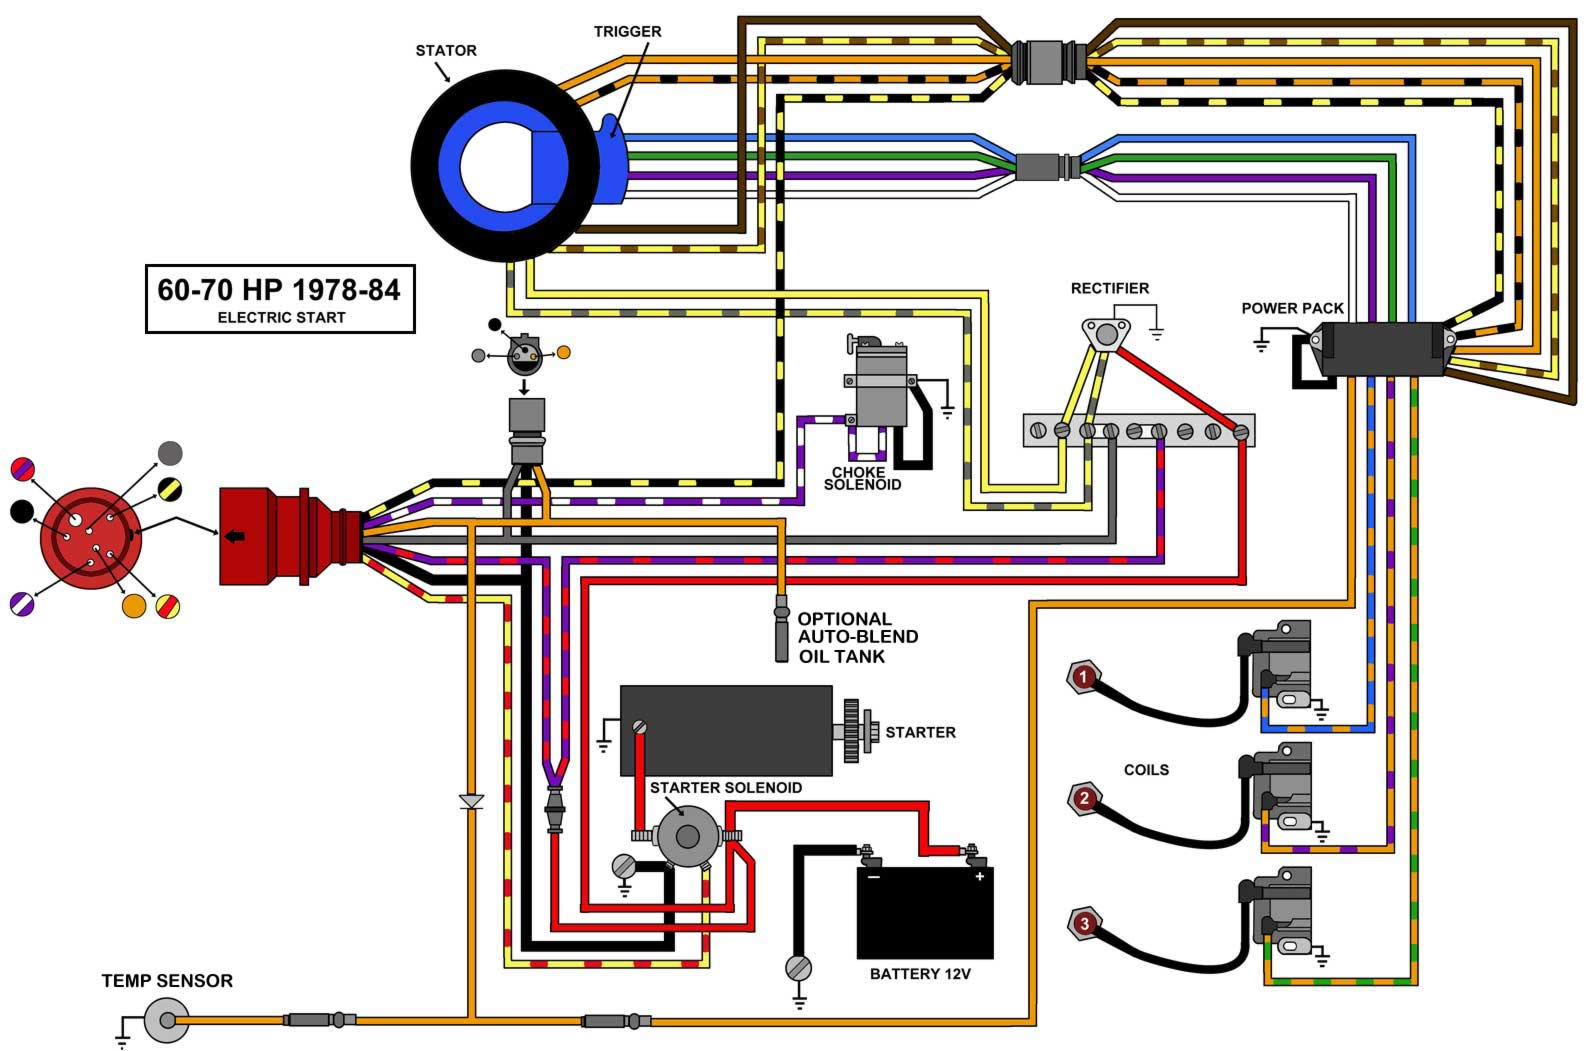 Johnson Wiring Harness - Wiring Diagram Blog on painless wiring headlight switch, neutral starter switch, painless wiring speed sensor, painless wiring fuse box, painless wiring battery switch, painless wiring horn,